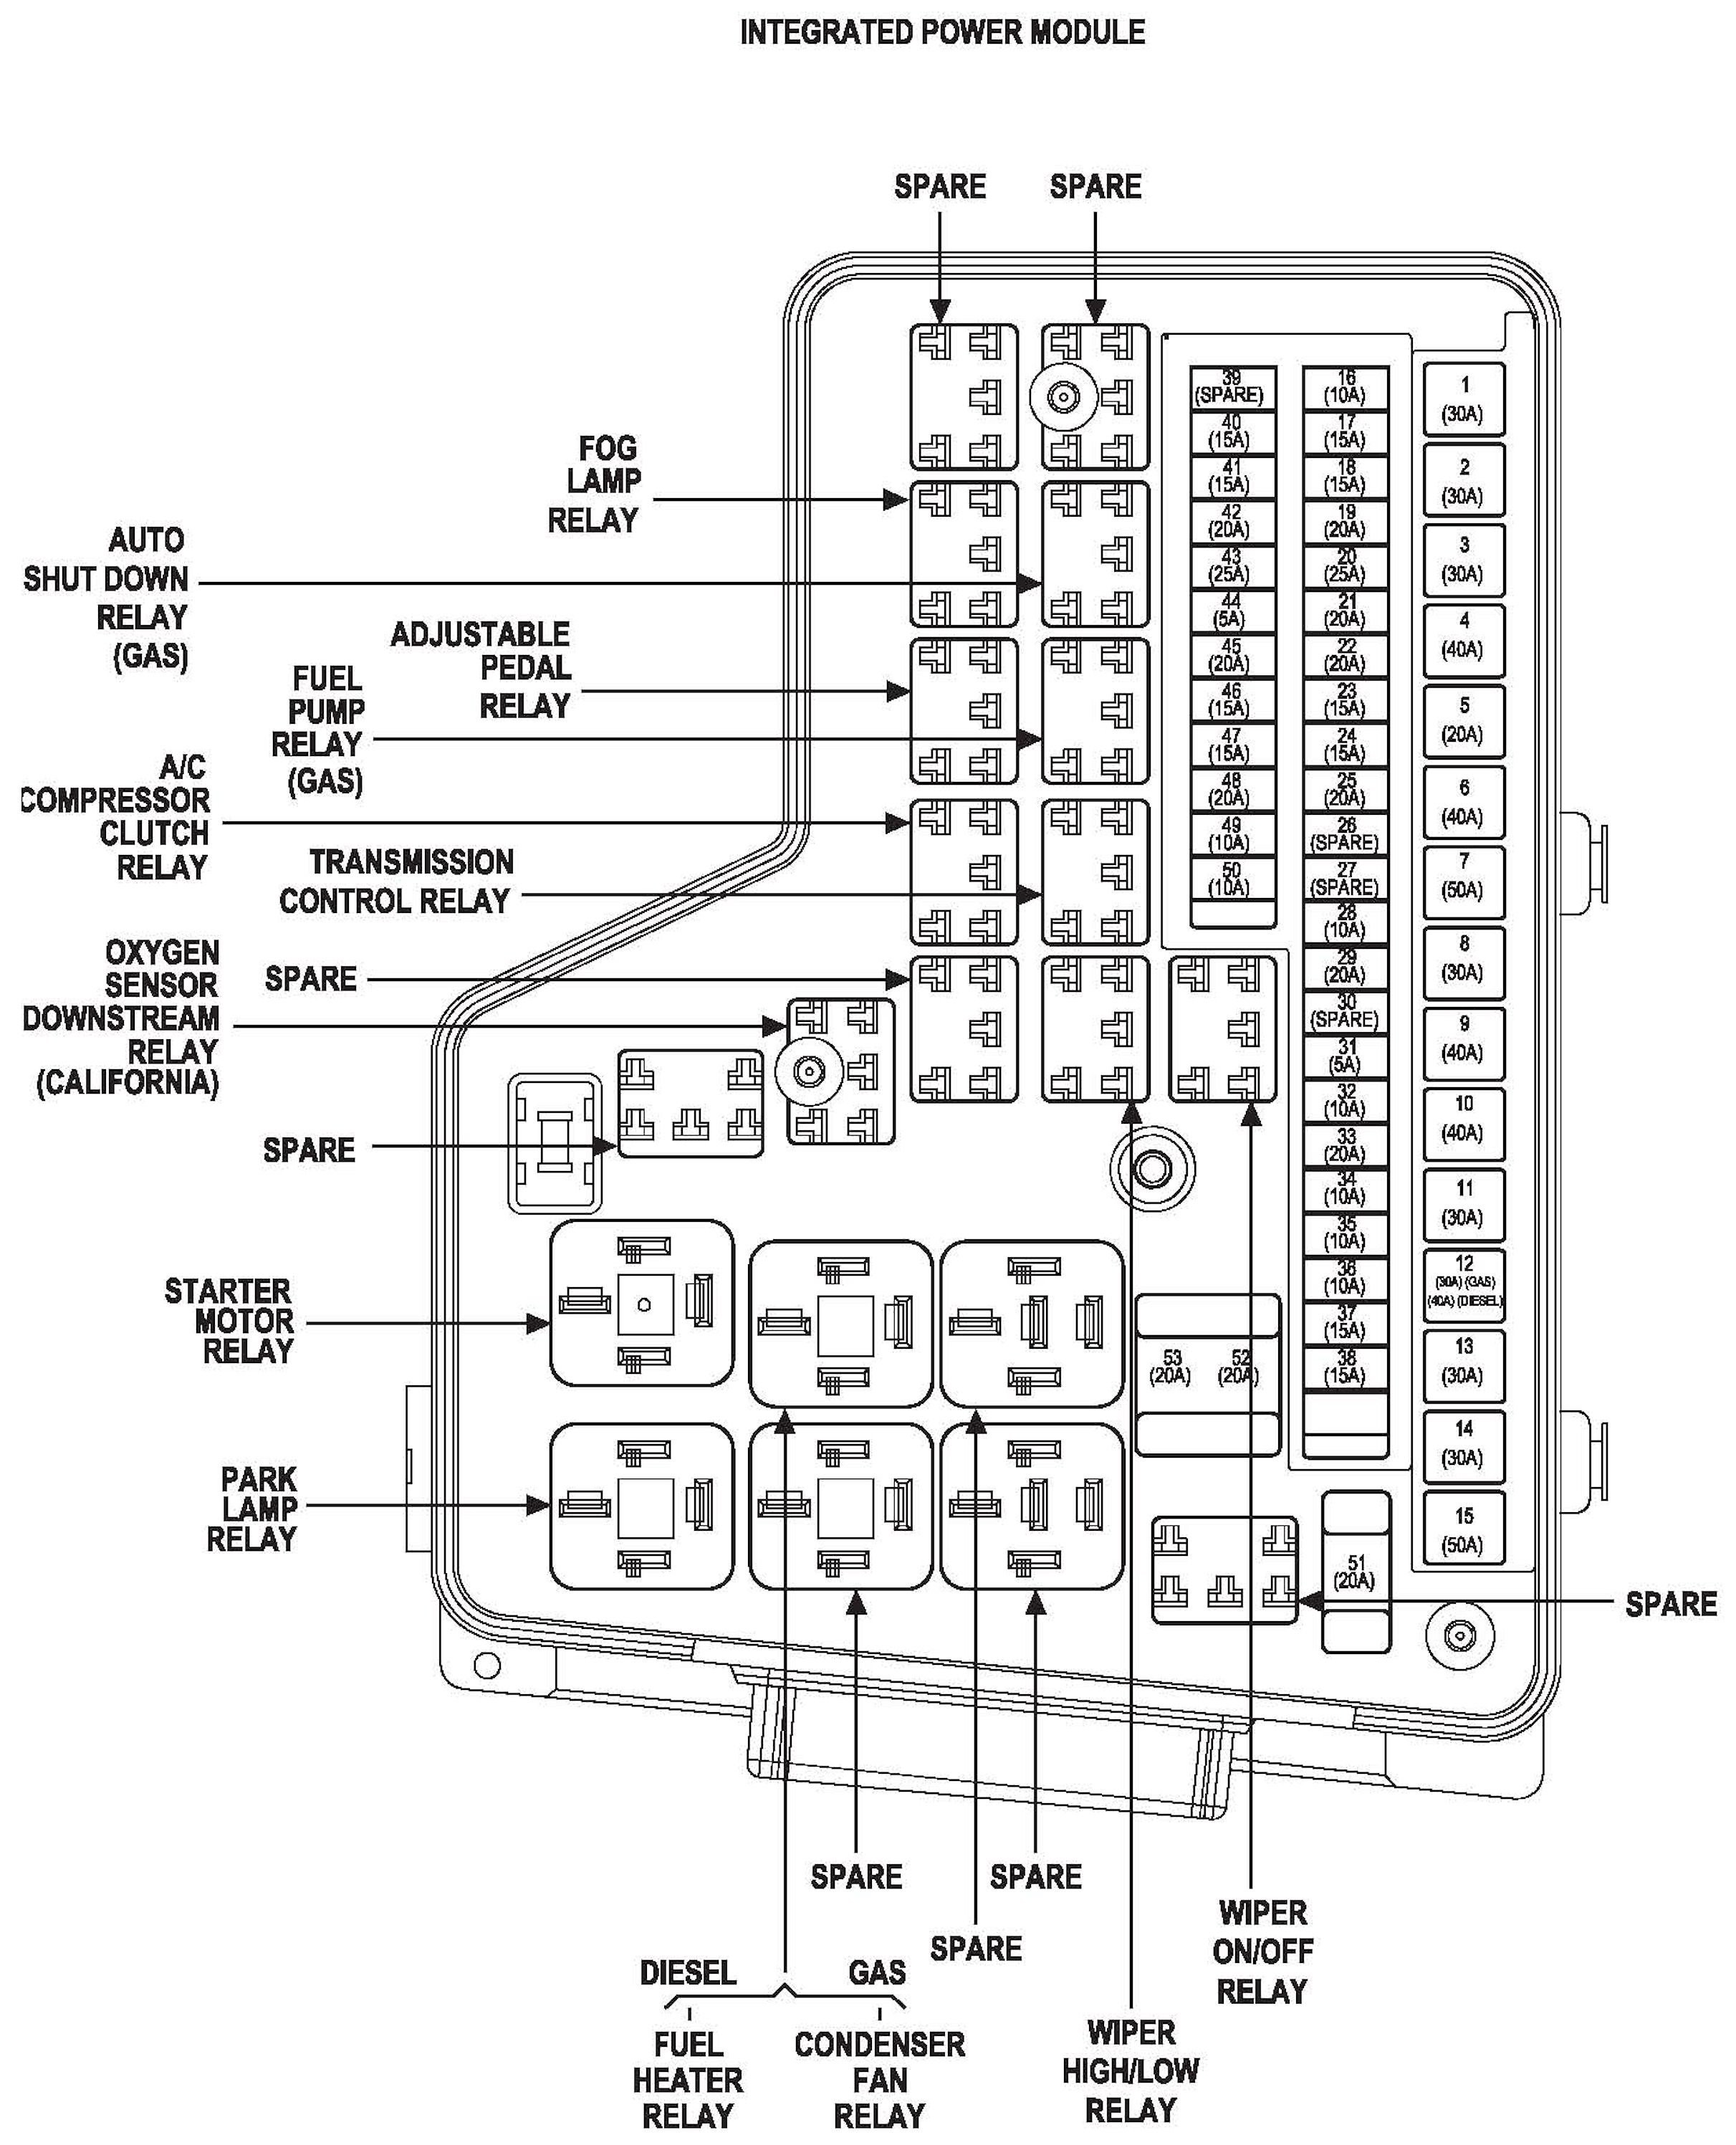 Fuse Box Diagram For 2000 Dodge Neon Wiring Library Diagrams 1991 Cummins Enthusiast U2022 Rh Rasalibre Co 1996 Ram 1500